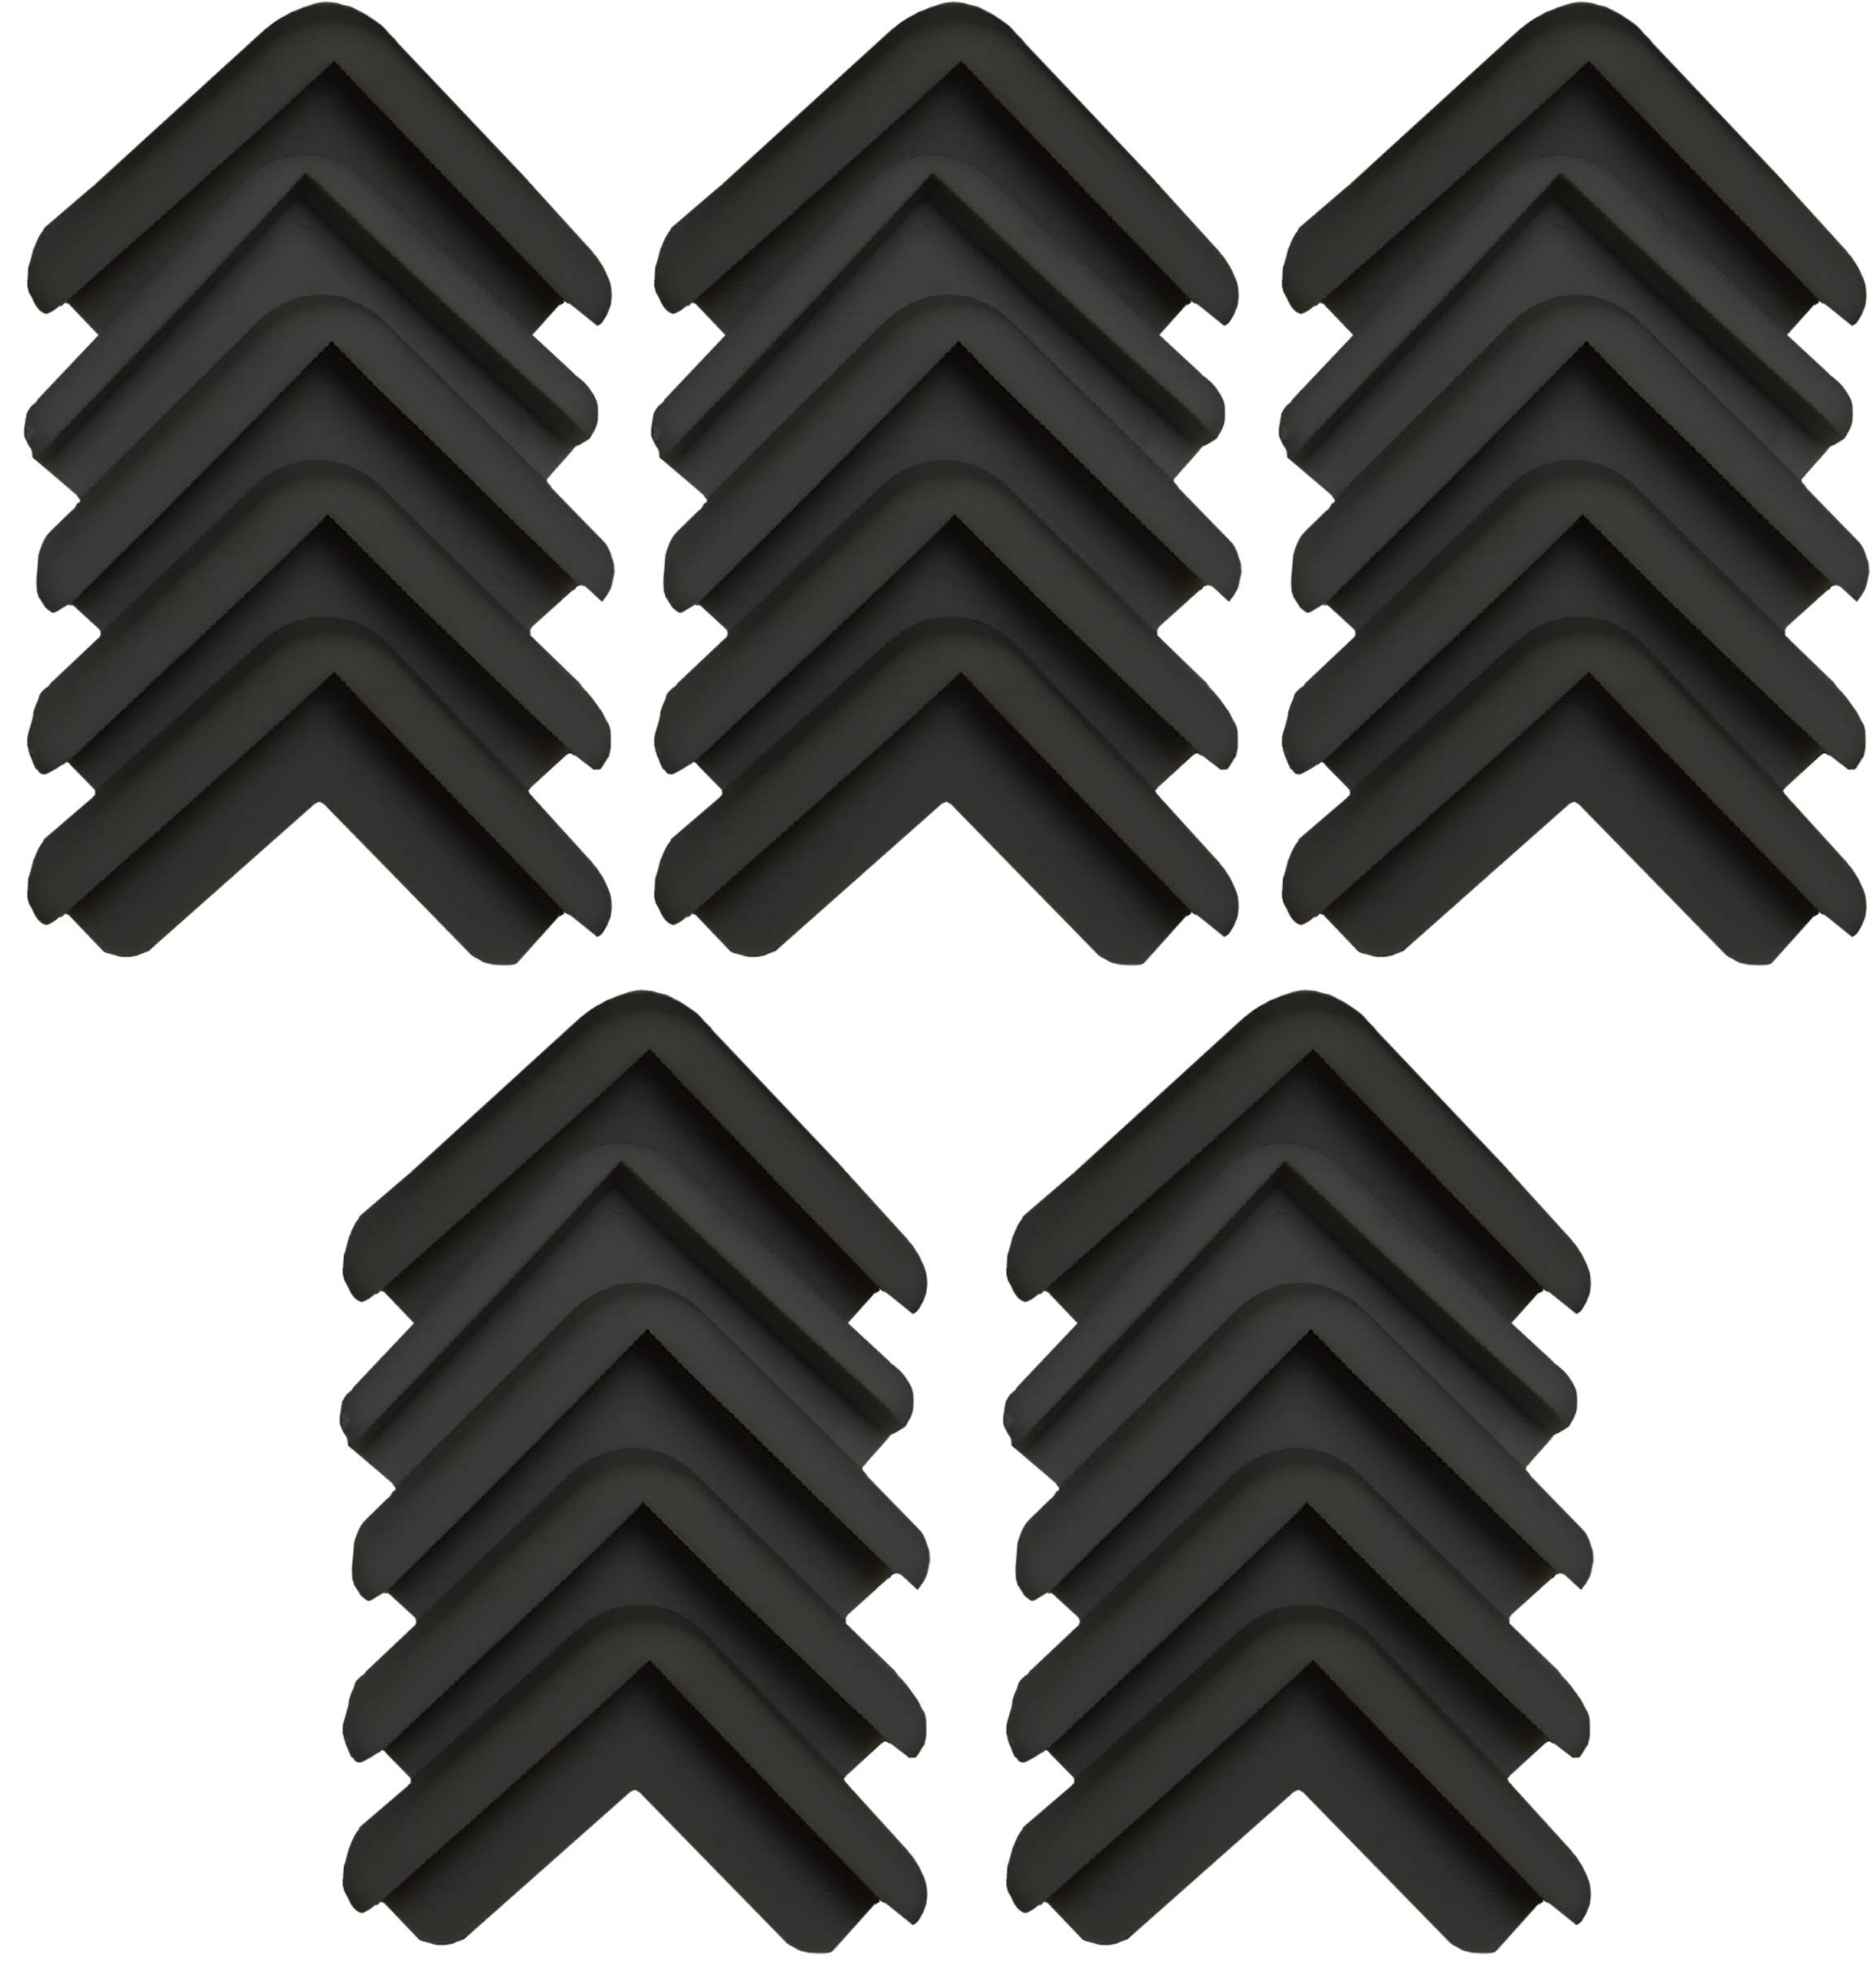 Boing Safety | Mini 2D Rubber Corner Guards | 25 Pack | Black by BOINGSAFETY (Image #1)